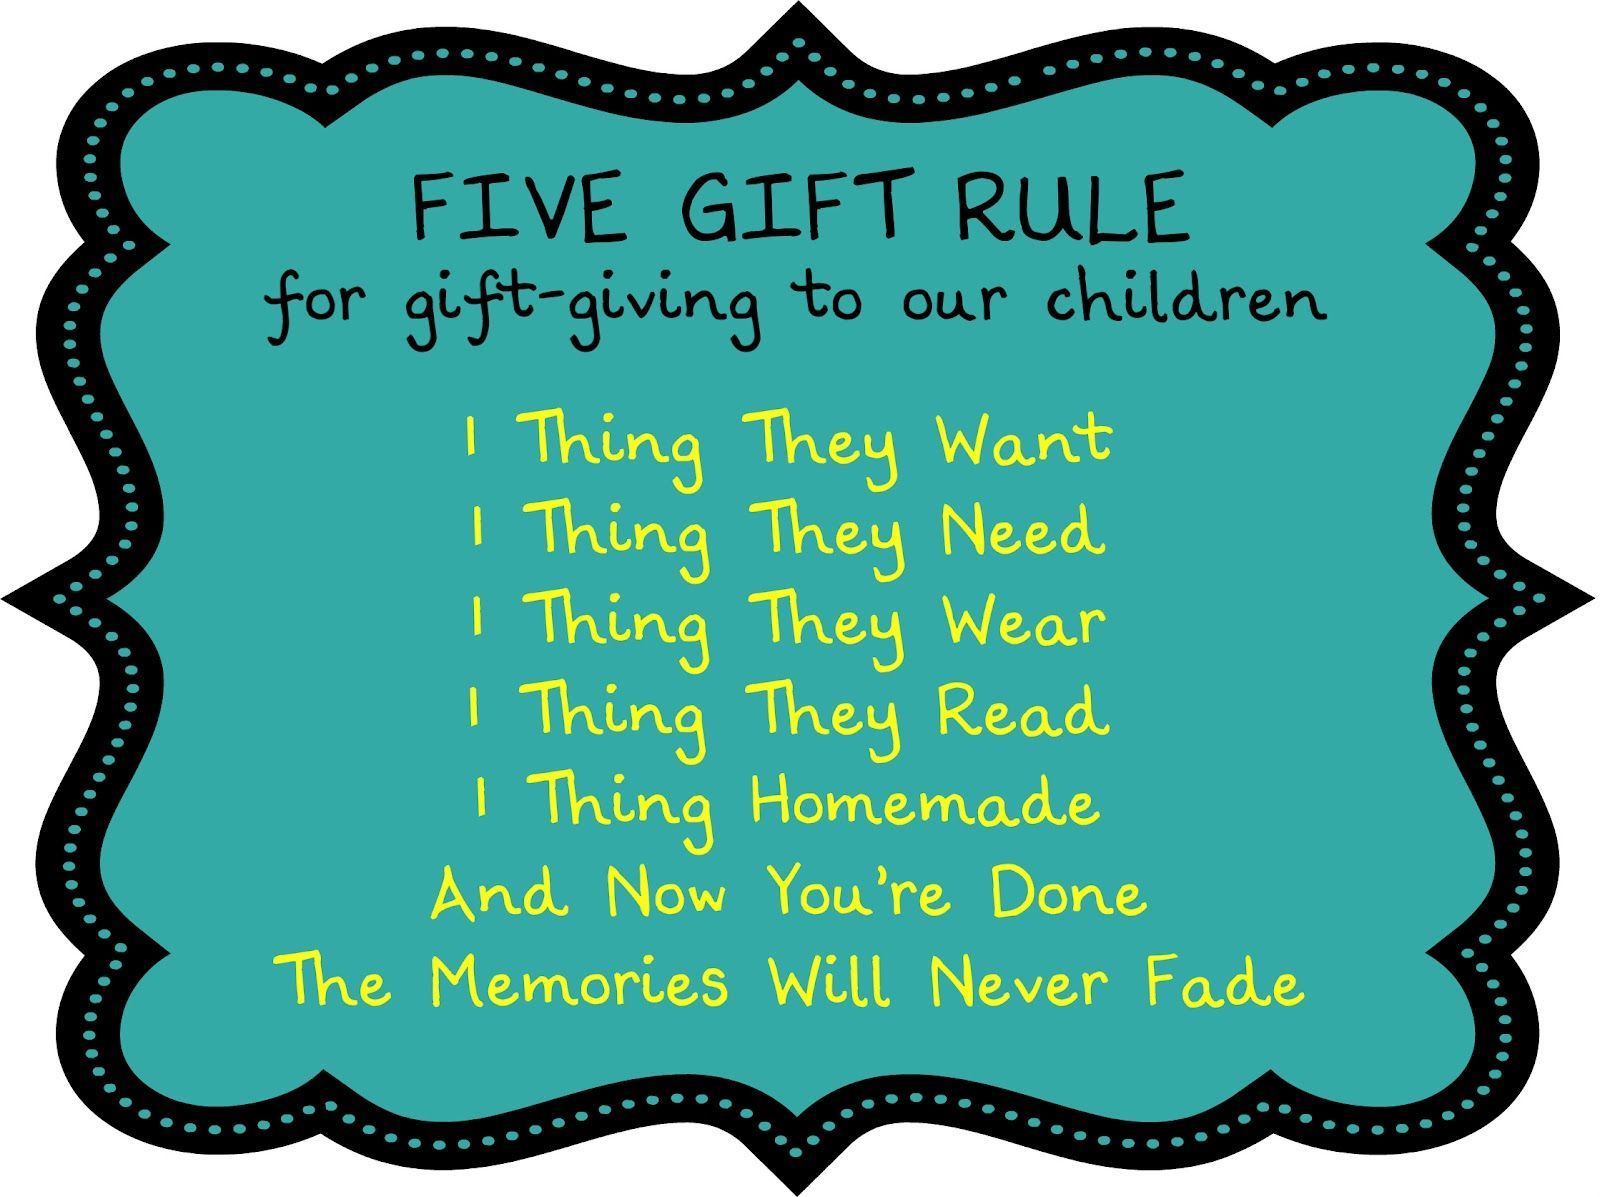 birthing me the five gift rulelove love love the 1 thing homemade so doing this for our kids this year